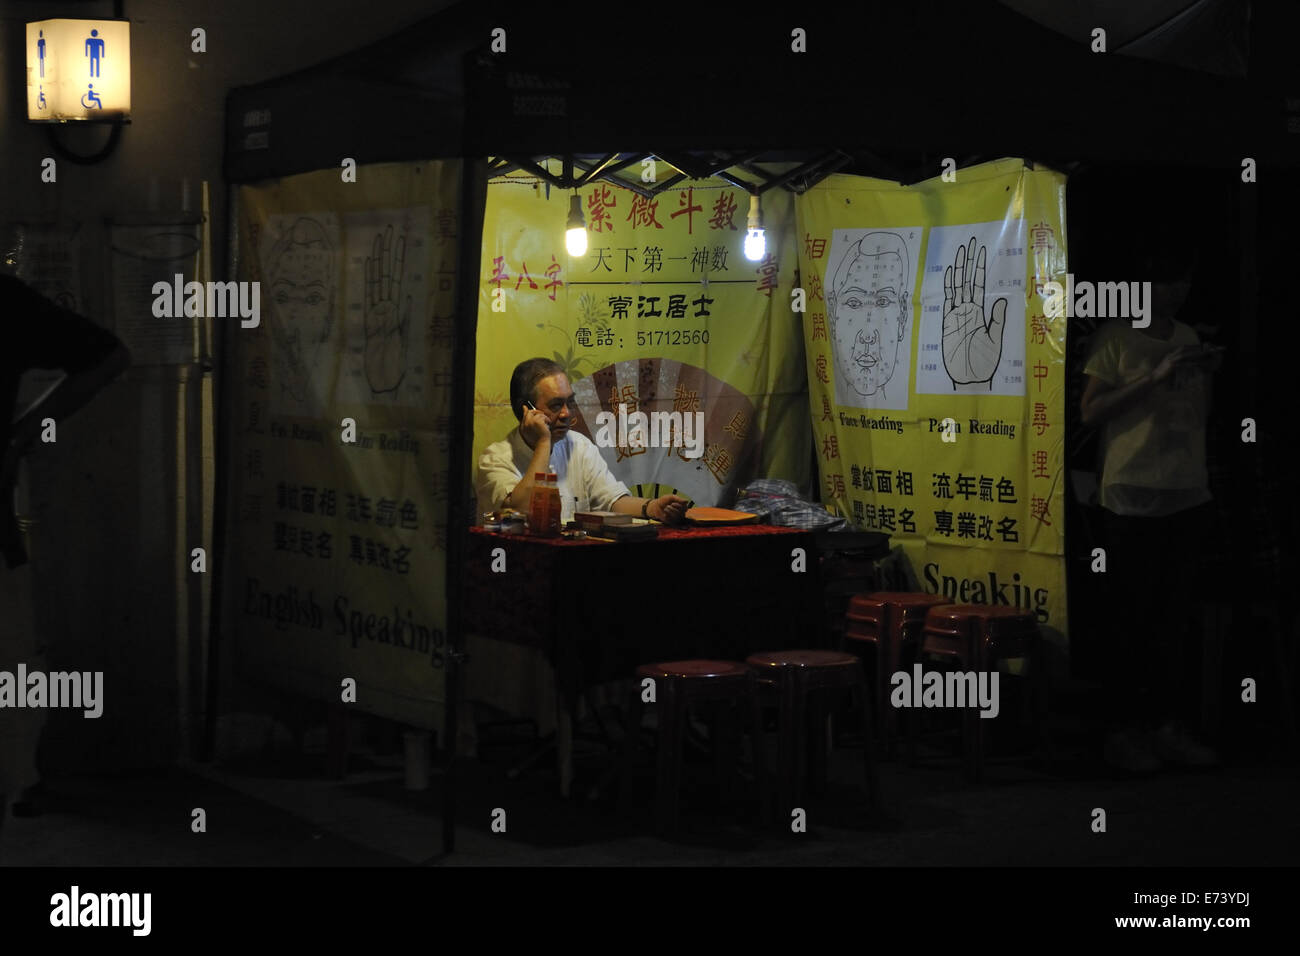 Fortune teller in street stall. Kowloon, Hong Kong, China - Stock Image